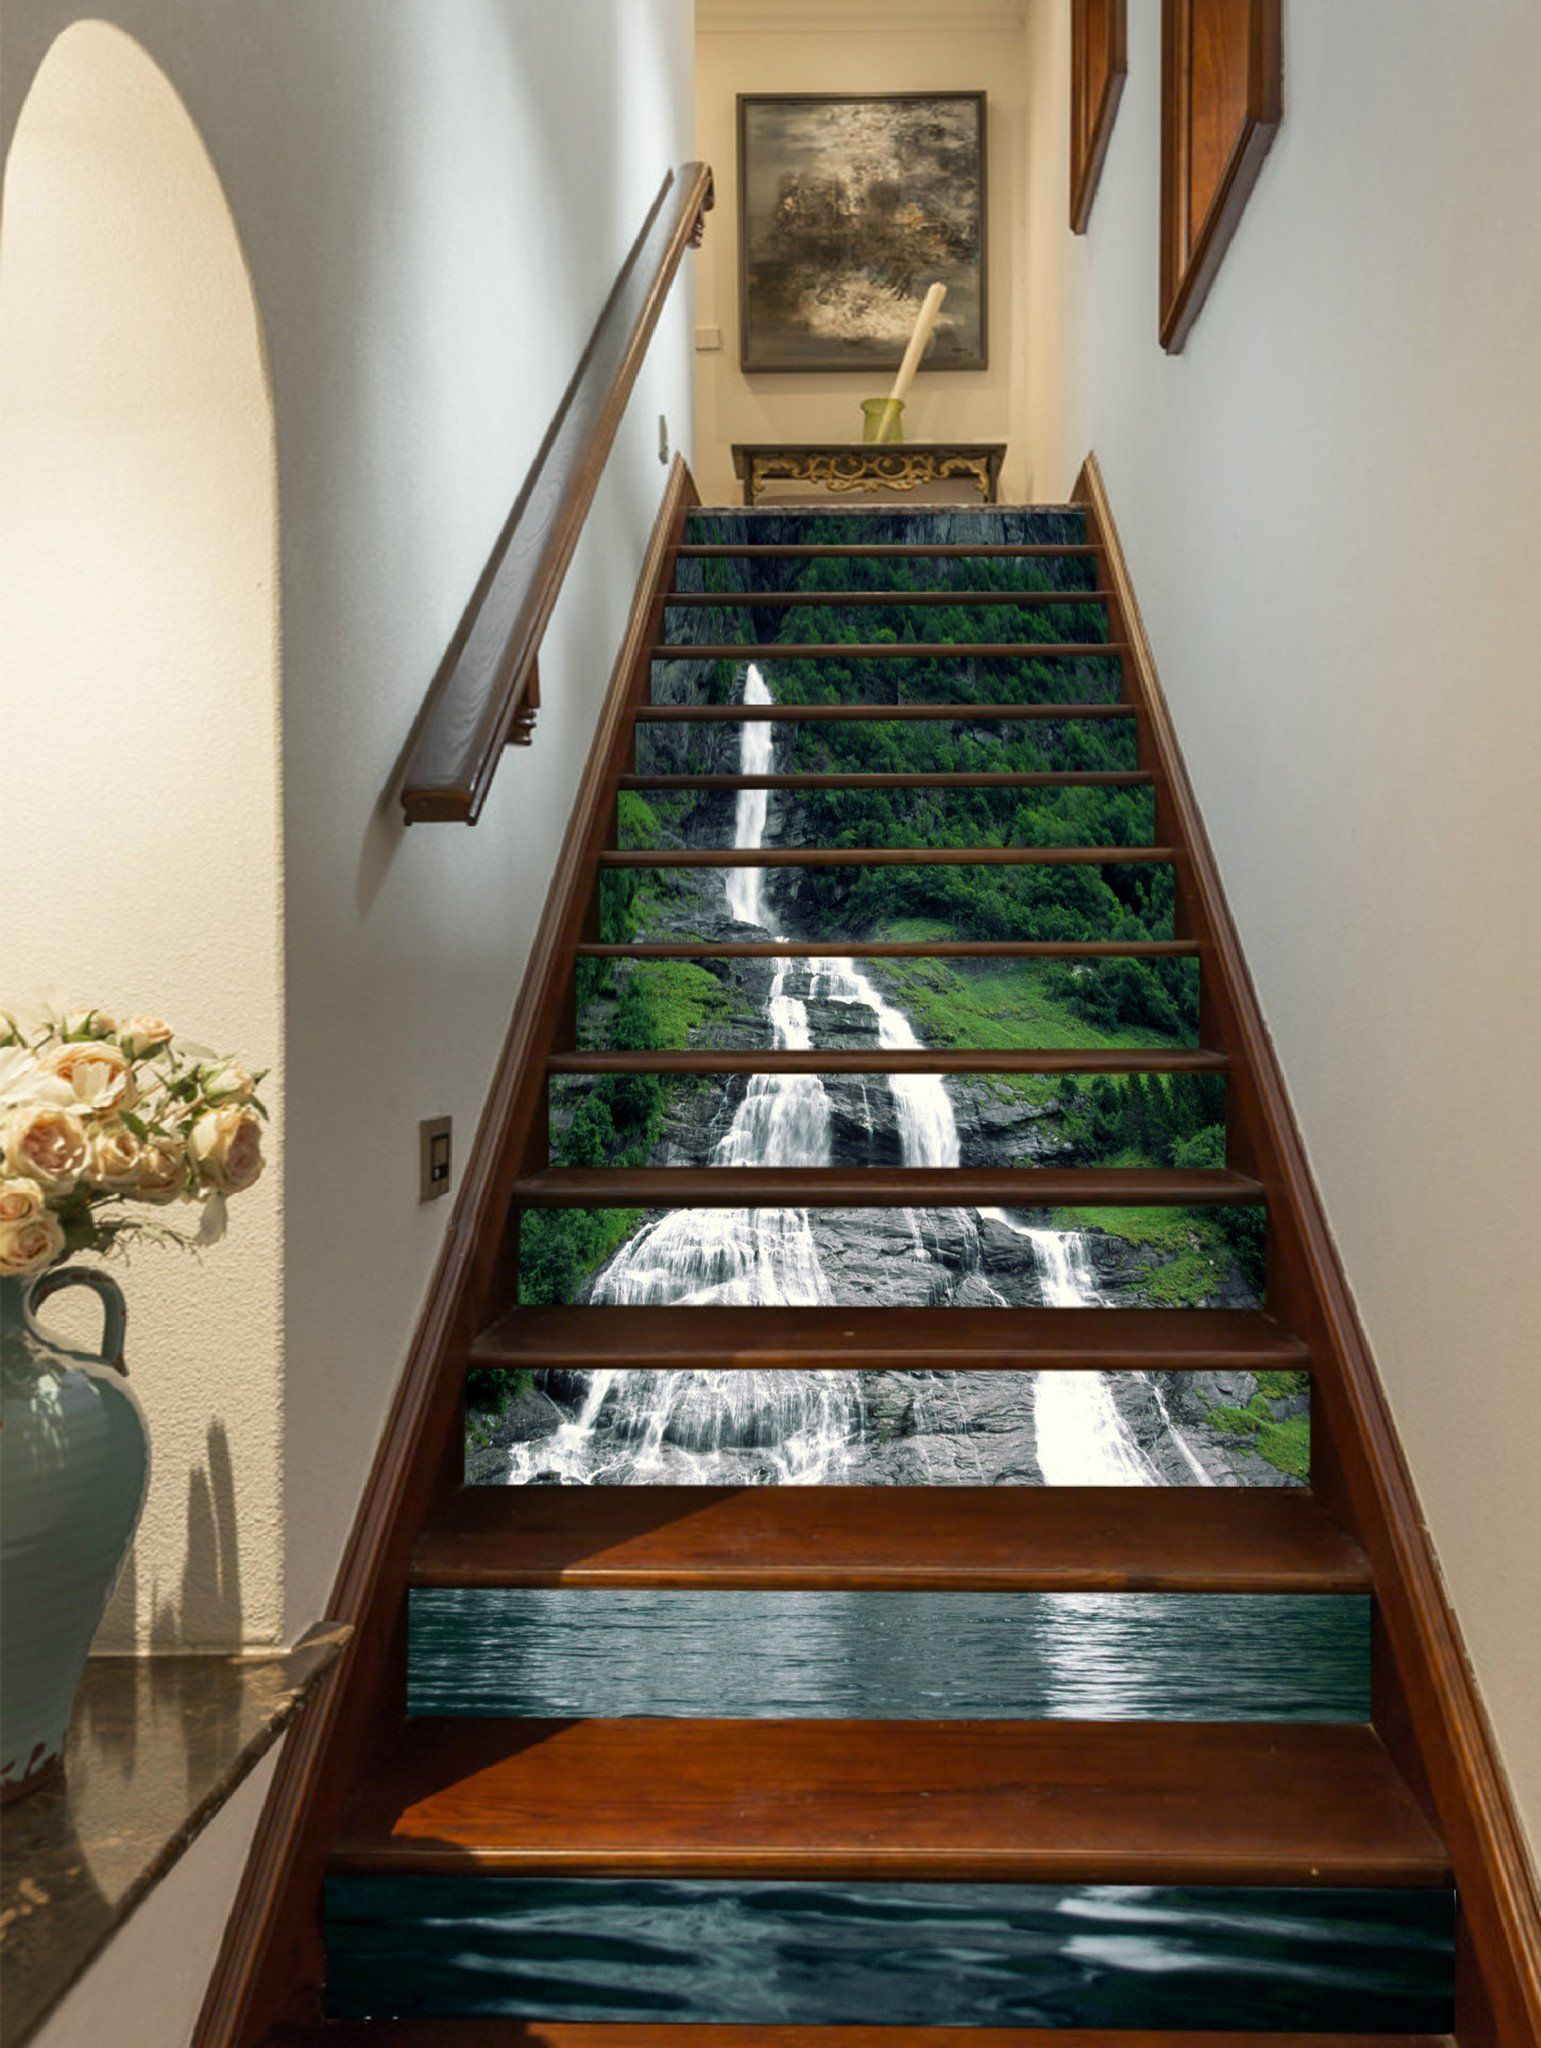 Best 3D Lakeside Steep Creek 954 Stair Risers In 2020 Stair 400 x 300